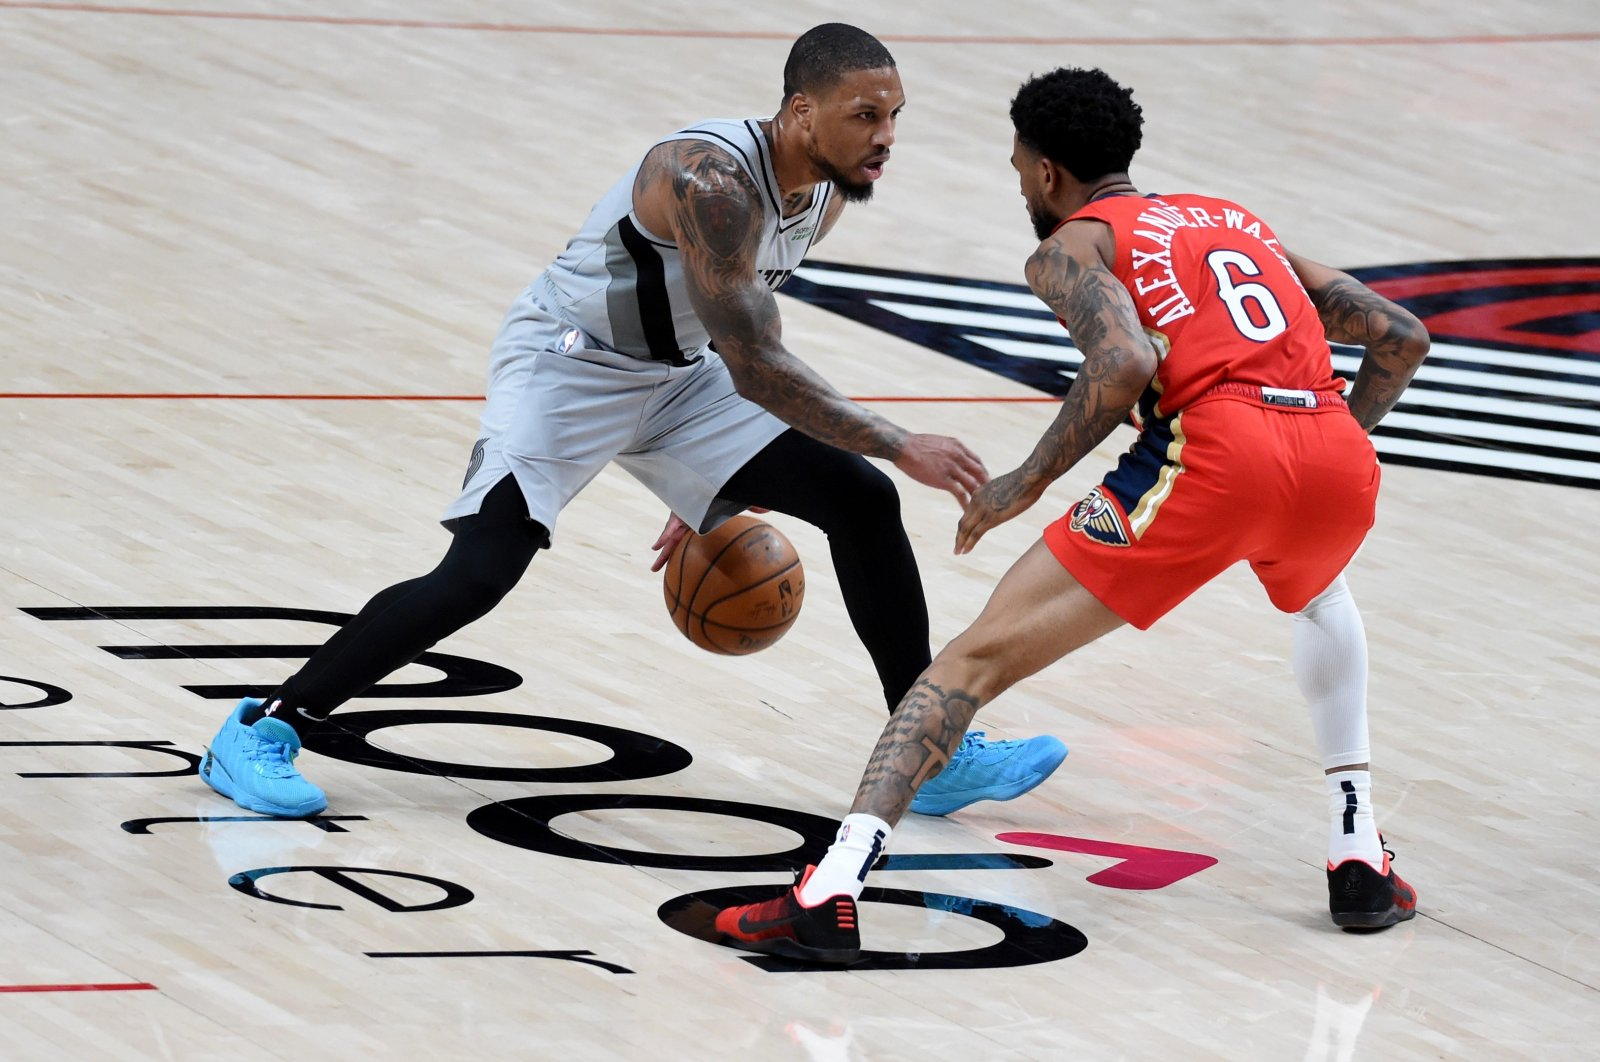 Portland Trail Blazers Damian Lillard (L) tries to go past New Orleans Pelicans' Nickeil Alexander-Walker during an NBA game at Moda Center, Portland, Oregon, March 16, 2021. (AFP Photo)